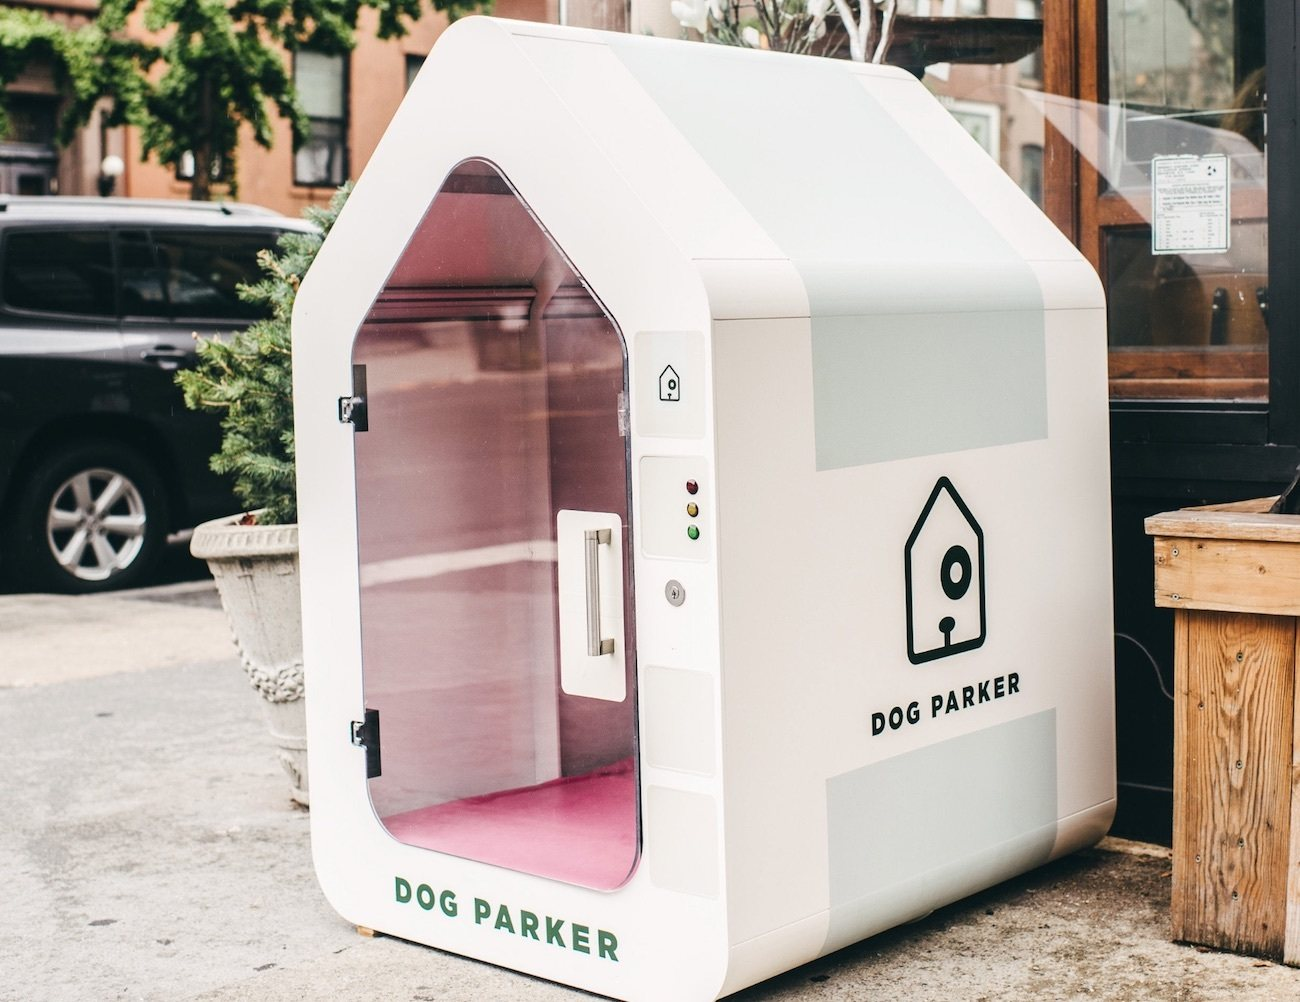 dog parker smart dog houses review the gadget flow With smart dog house